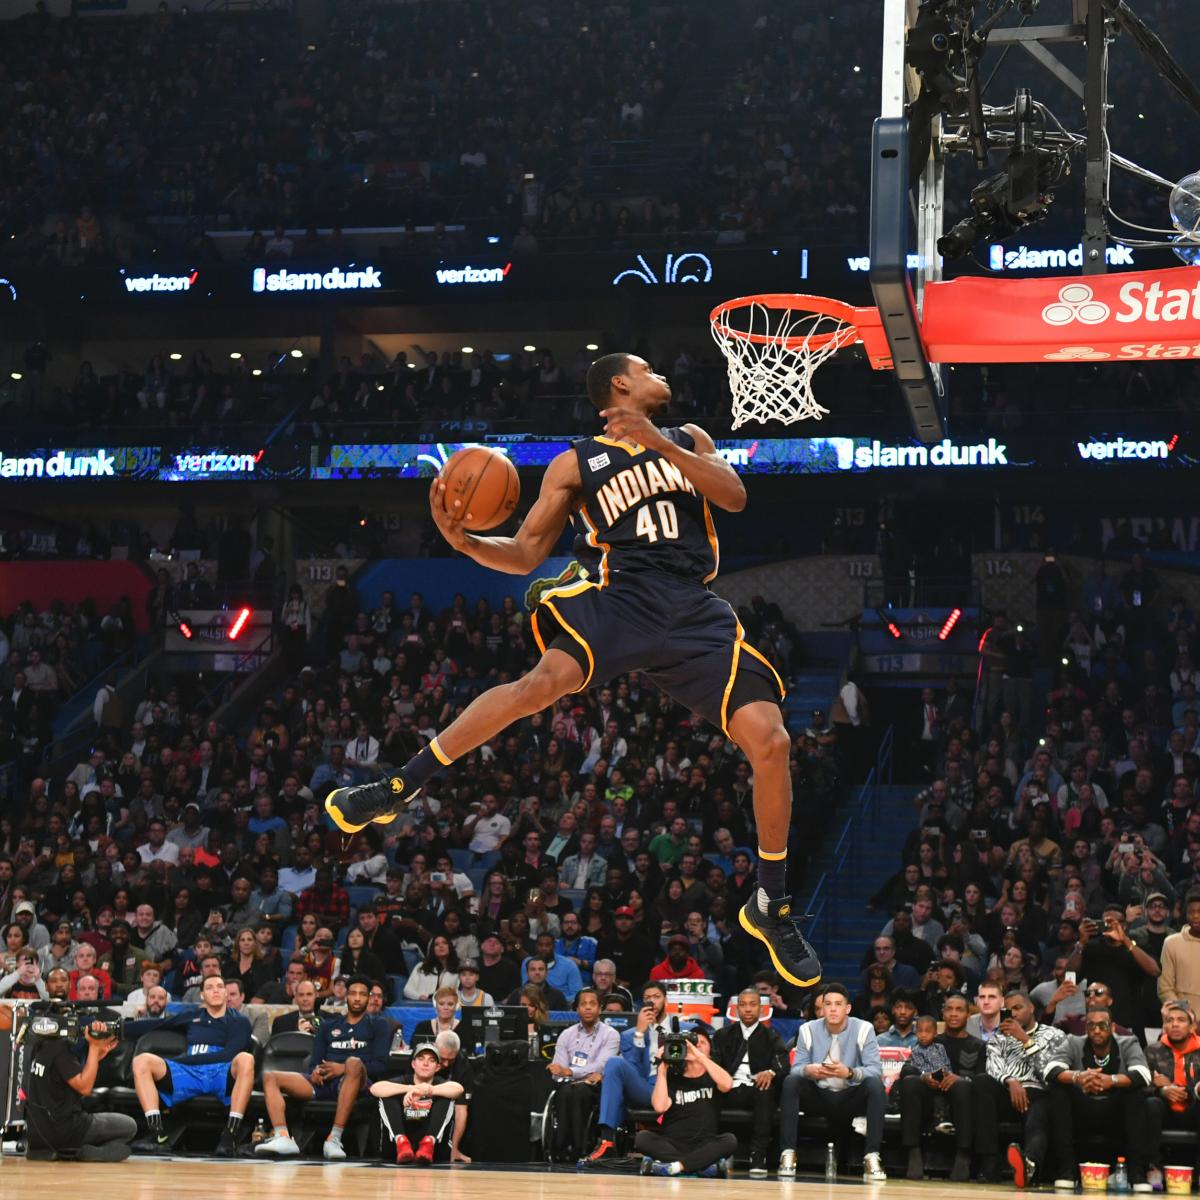 NBA Slam Dunk Contest 2017: Winner, Highlights, Scores And